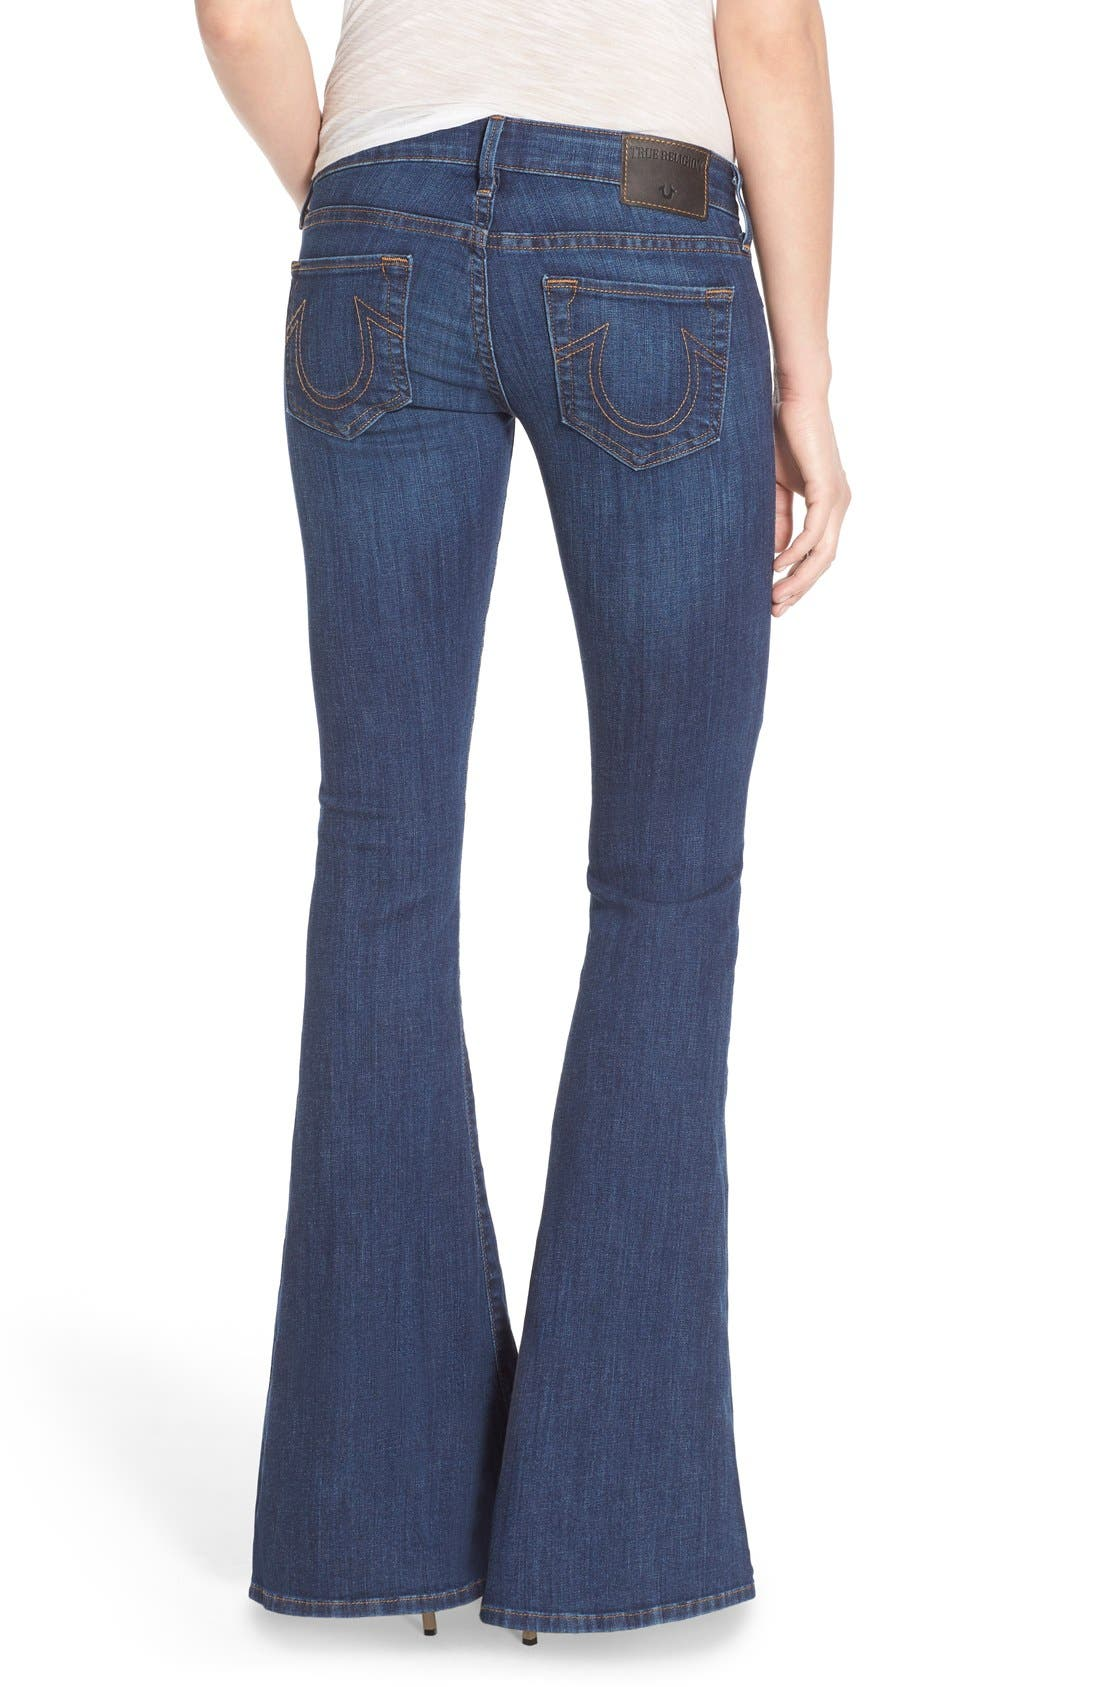 Alternate Image 2  - True Religion Brand Jeans 'Karlie' Bell Bottom Jeans (Worn Vintage)